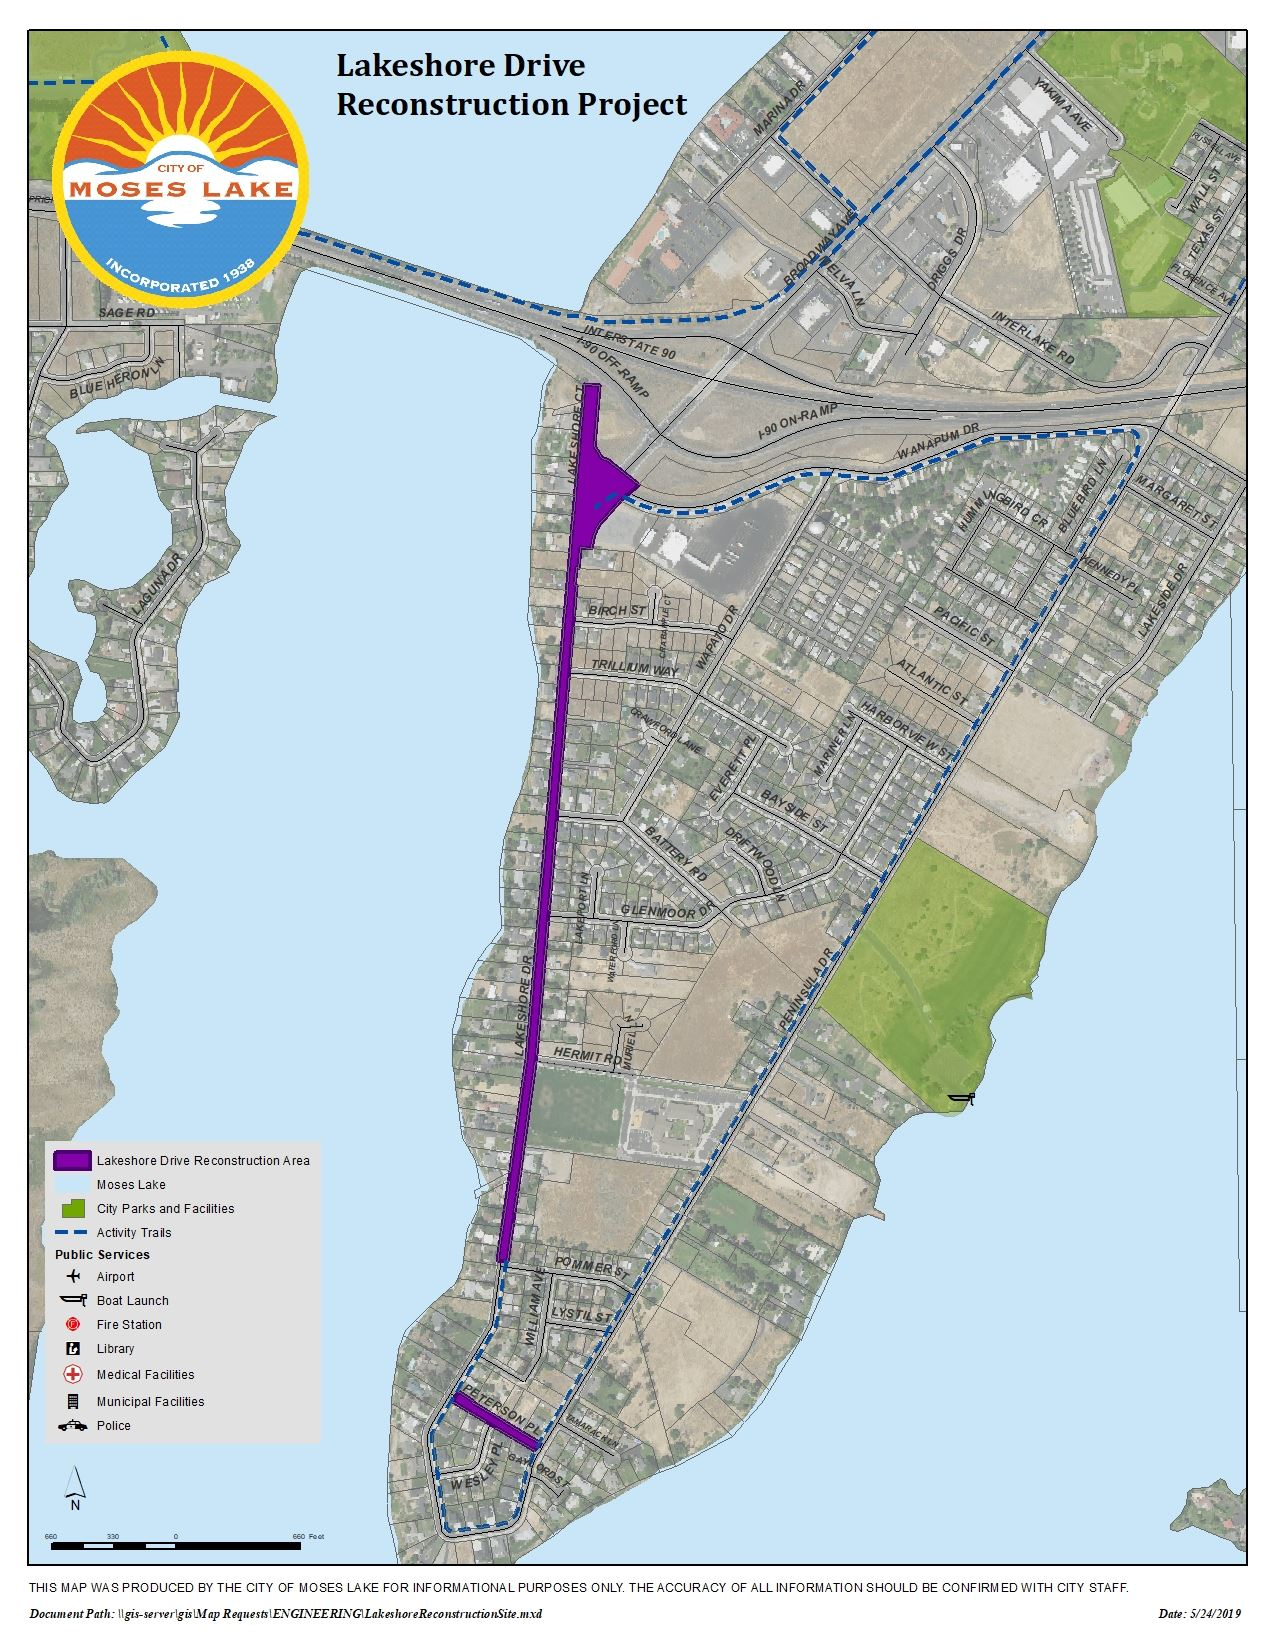 Map of Lakeshore Drive Reconstruction Project - 2019